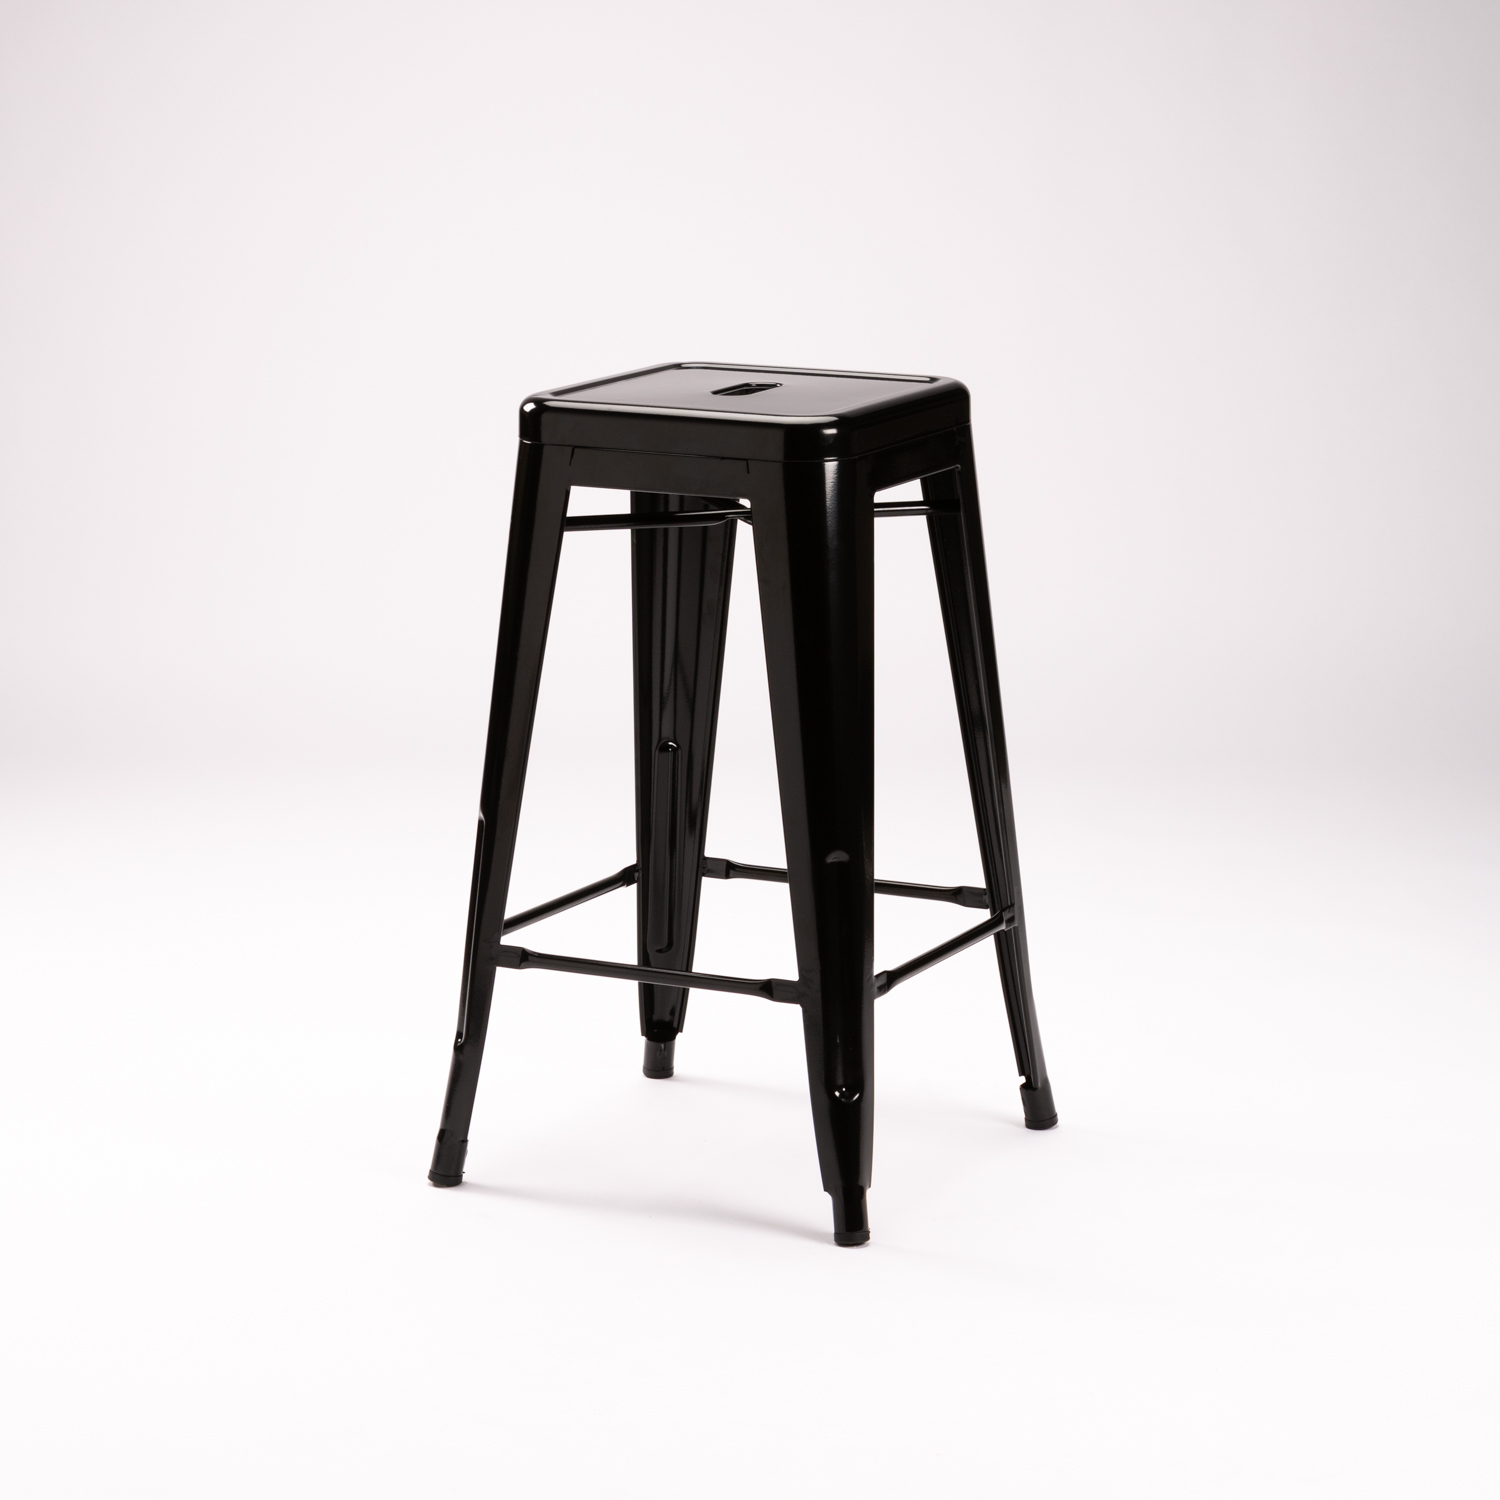 Decofurn Furniture Tolix Kitchen Stool